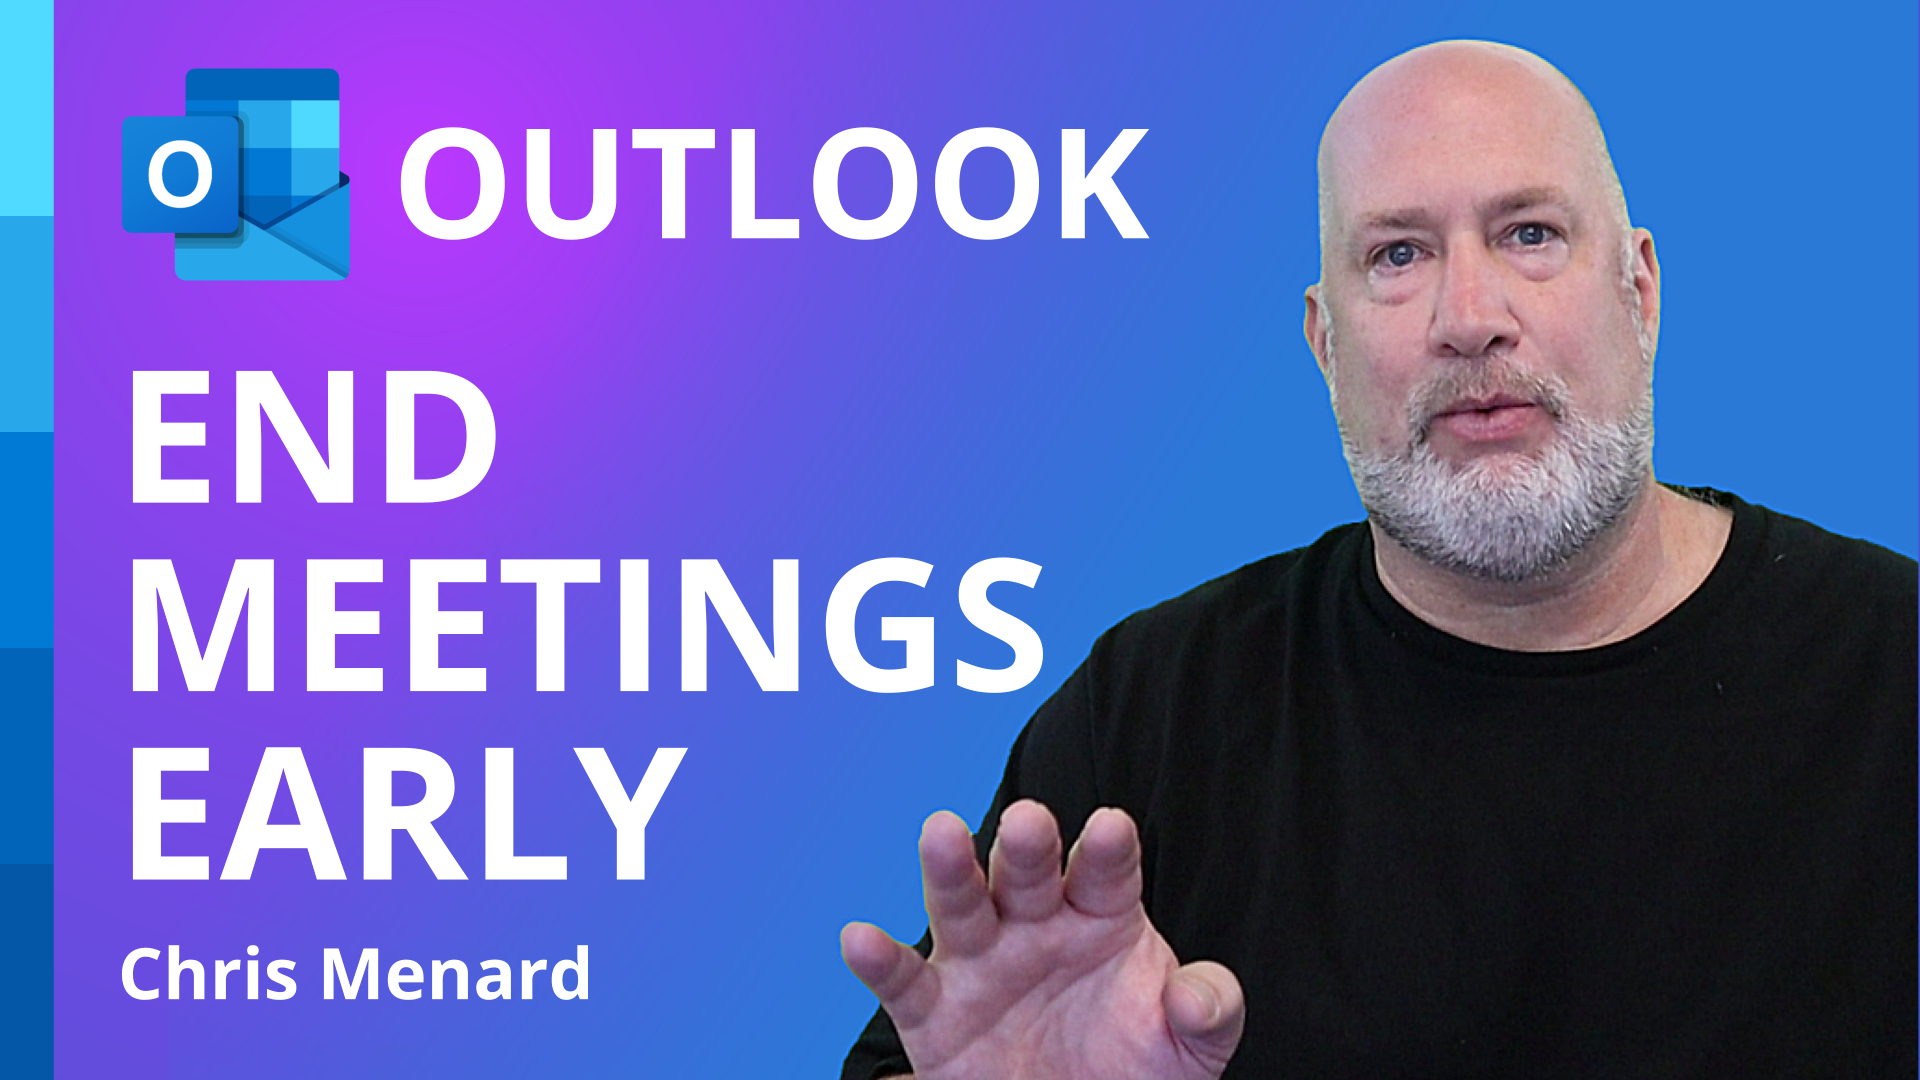 Outlook - End meetings early or start late - NEW feature 2021